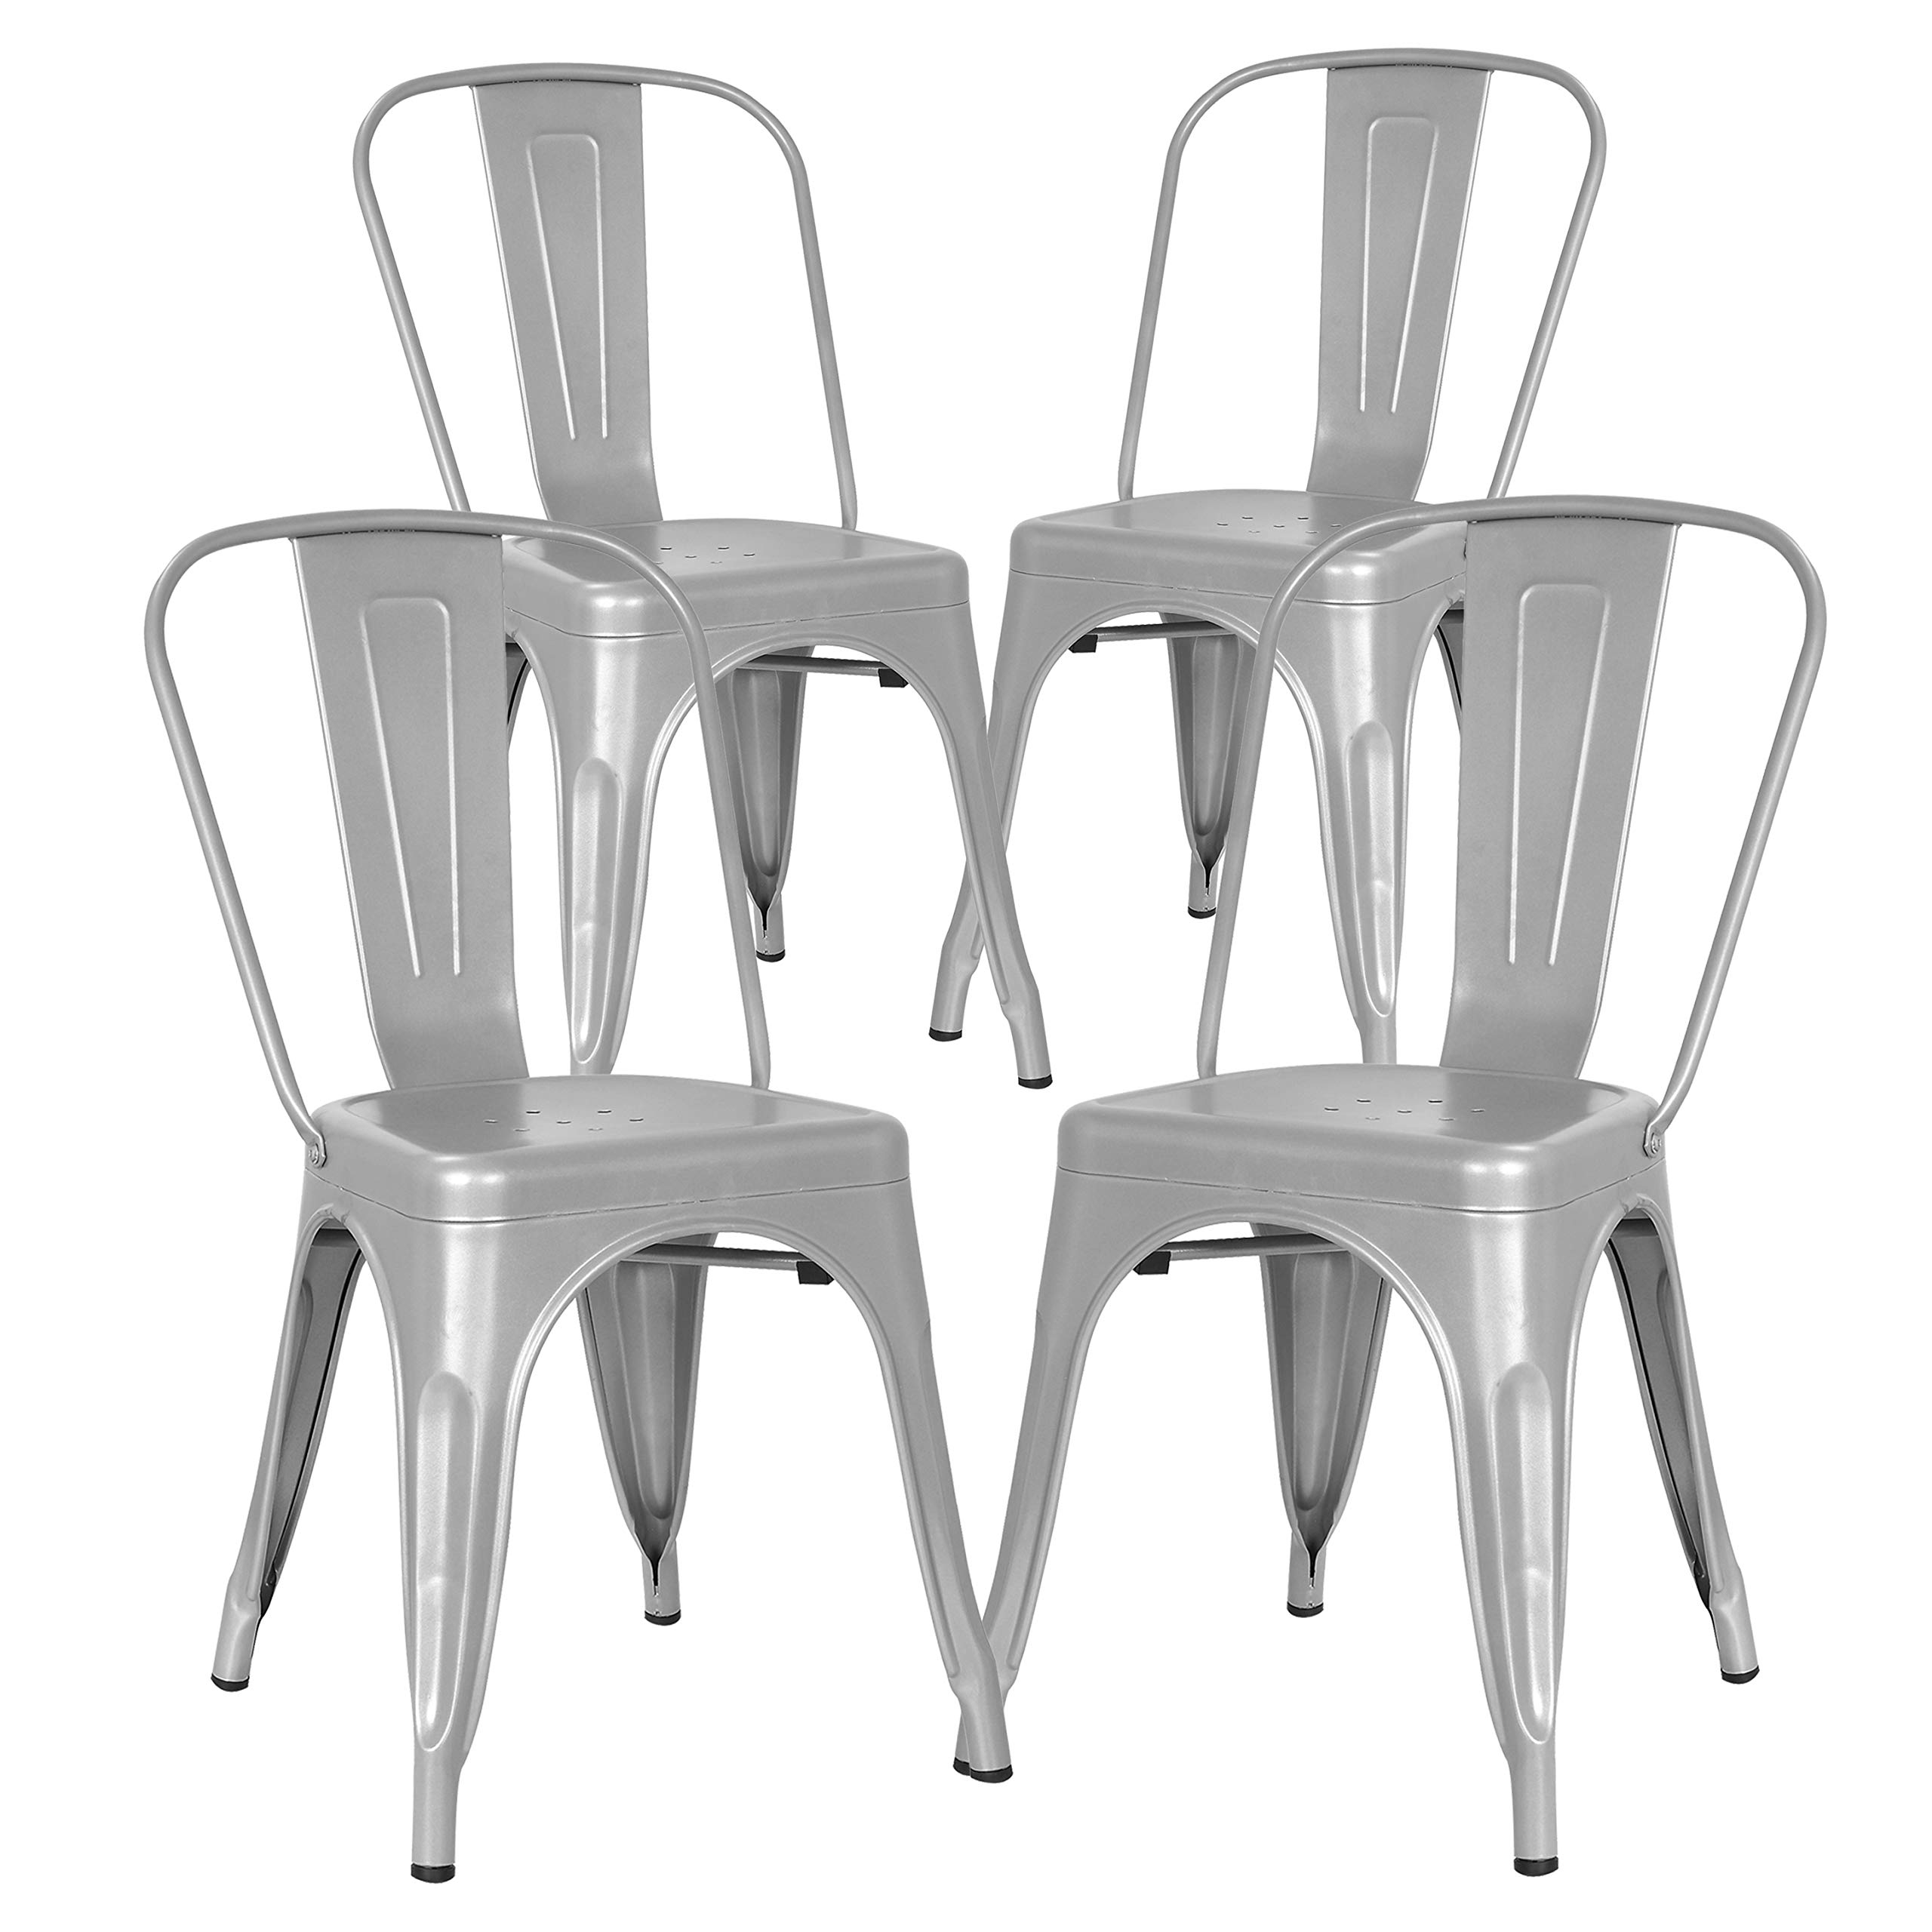 Sensational Poly And Bark Trattoria Side Chair In Grey Set Of 4 Bralicious Painted Fabric Chair Ideas Braliciousco